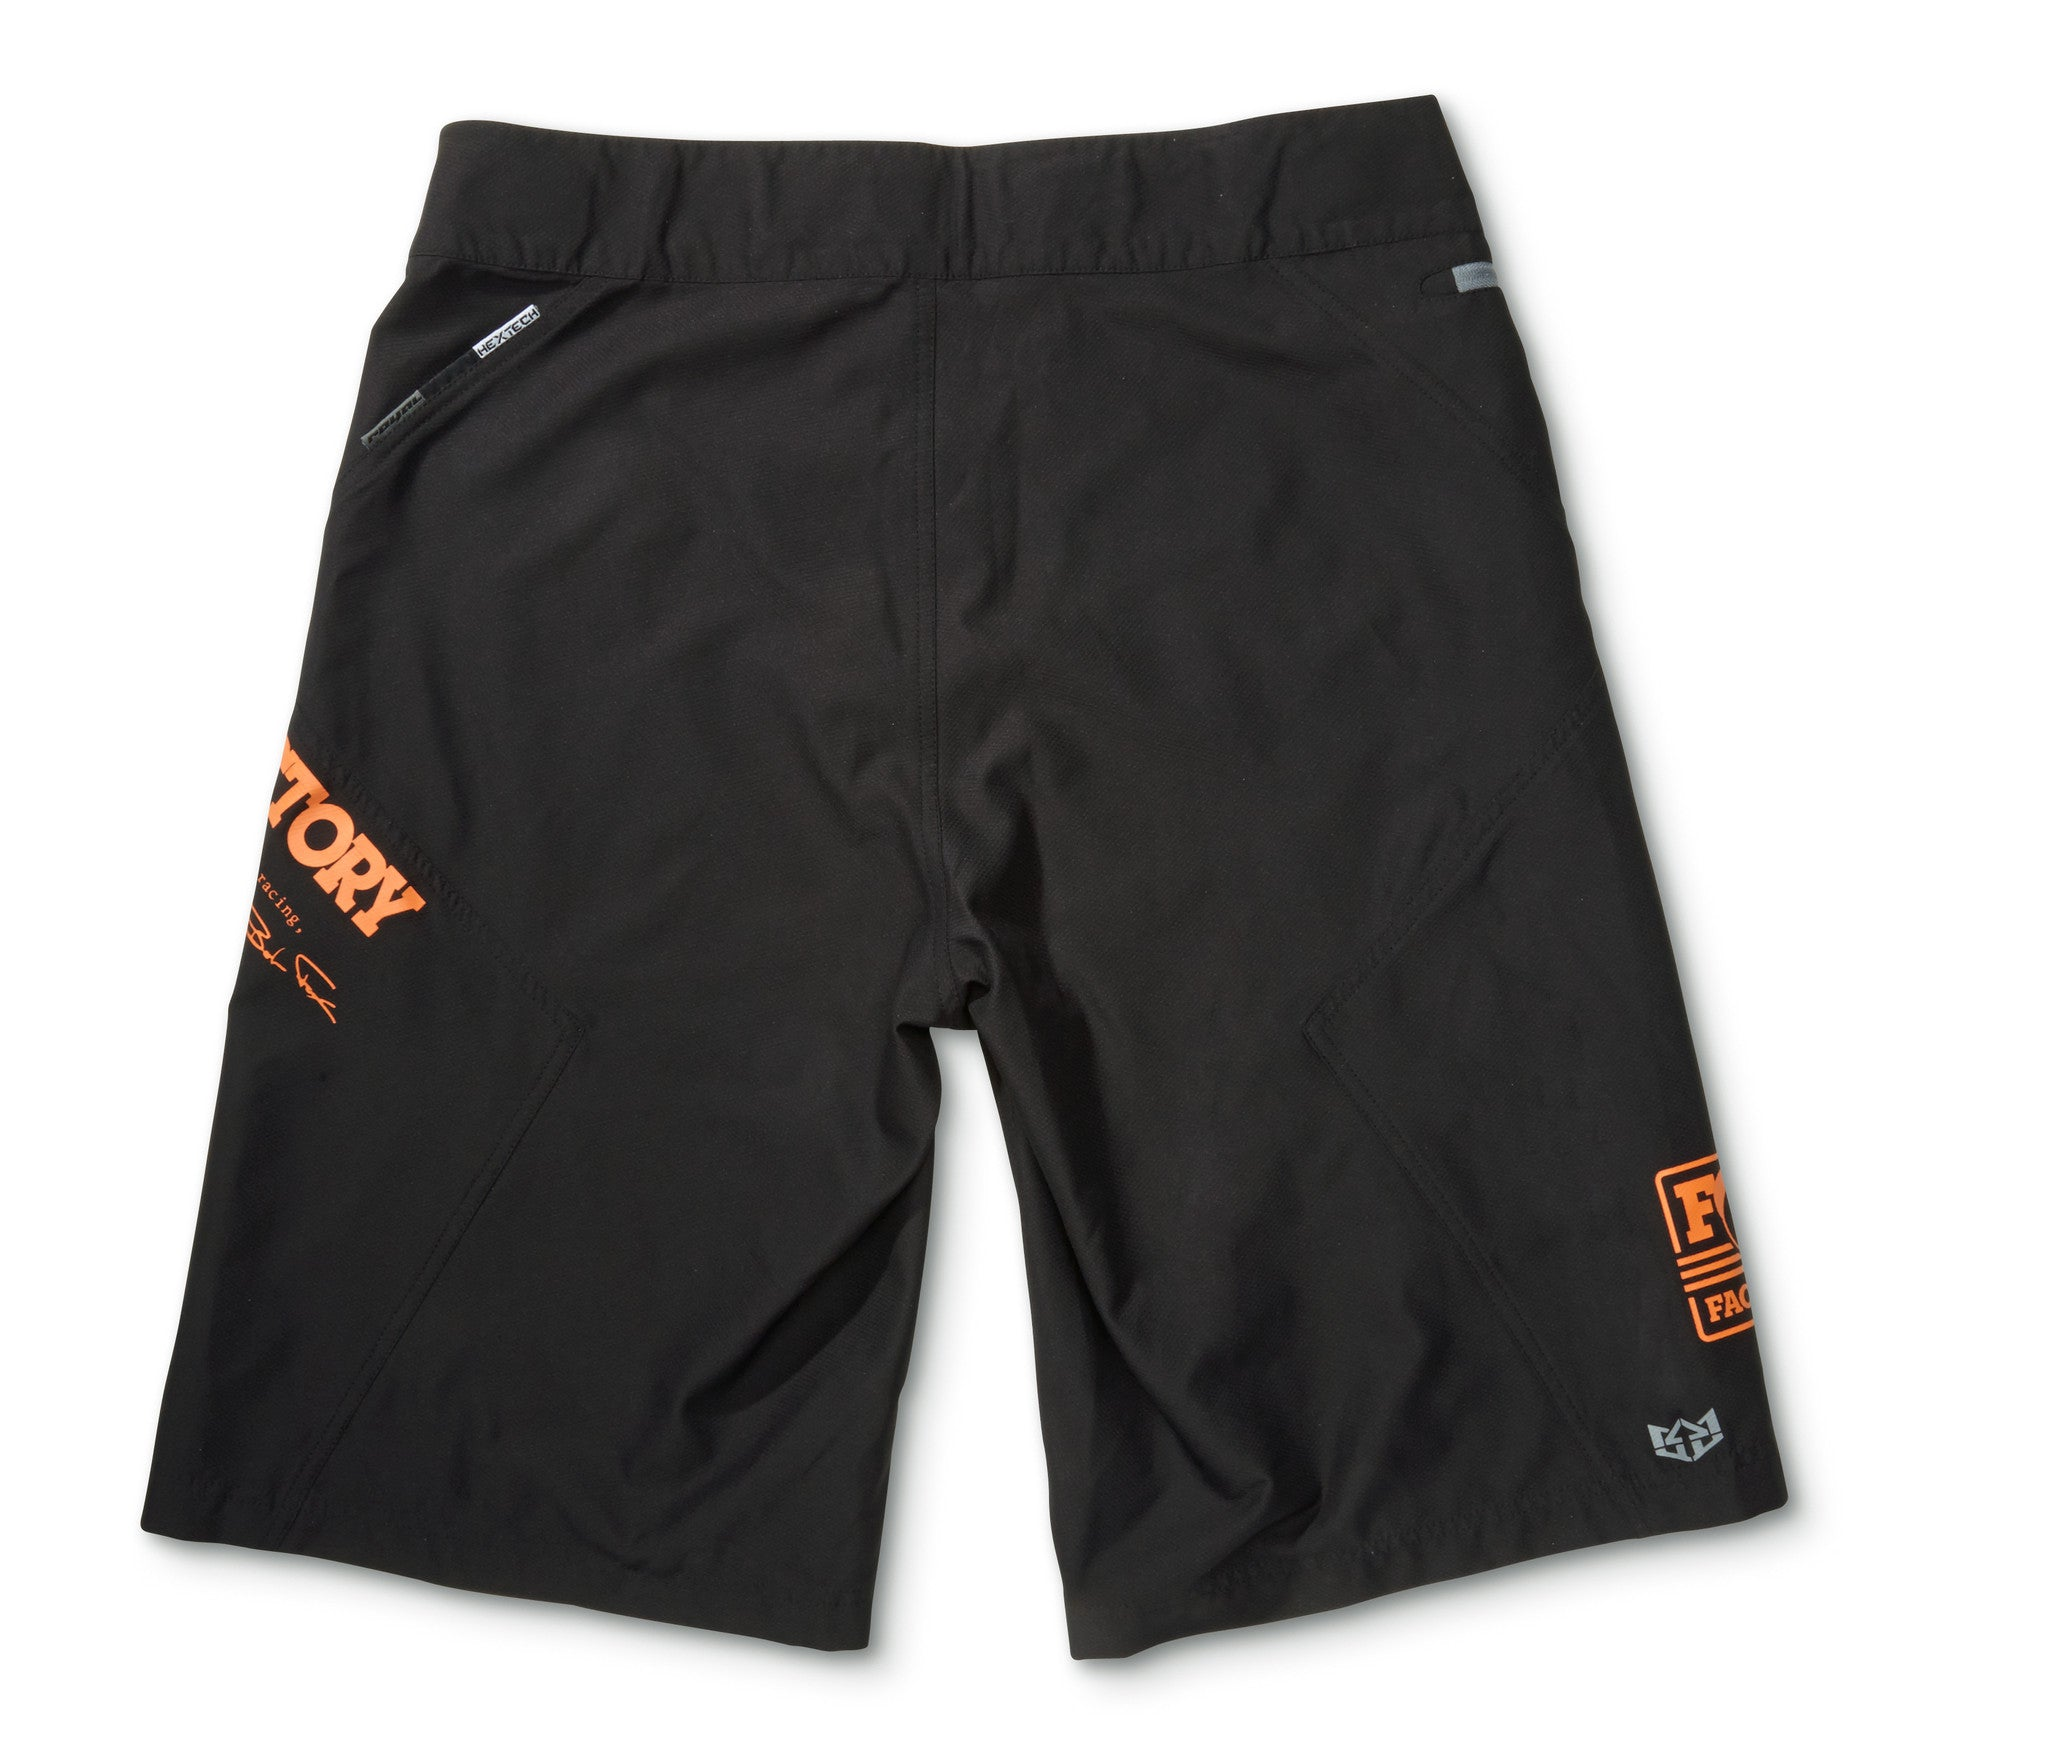 FOX Heritage Signature Shorts, Black